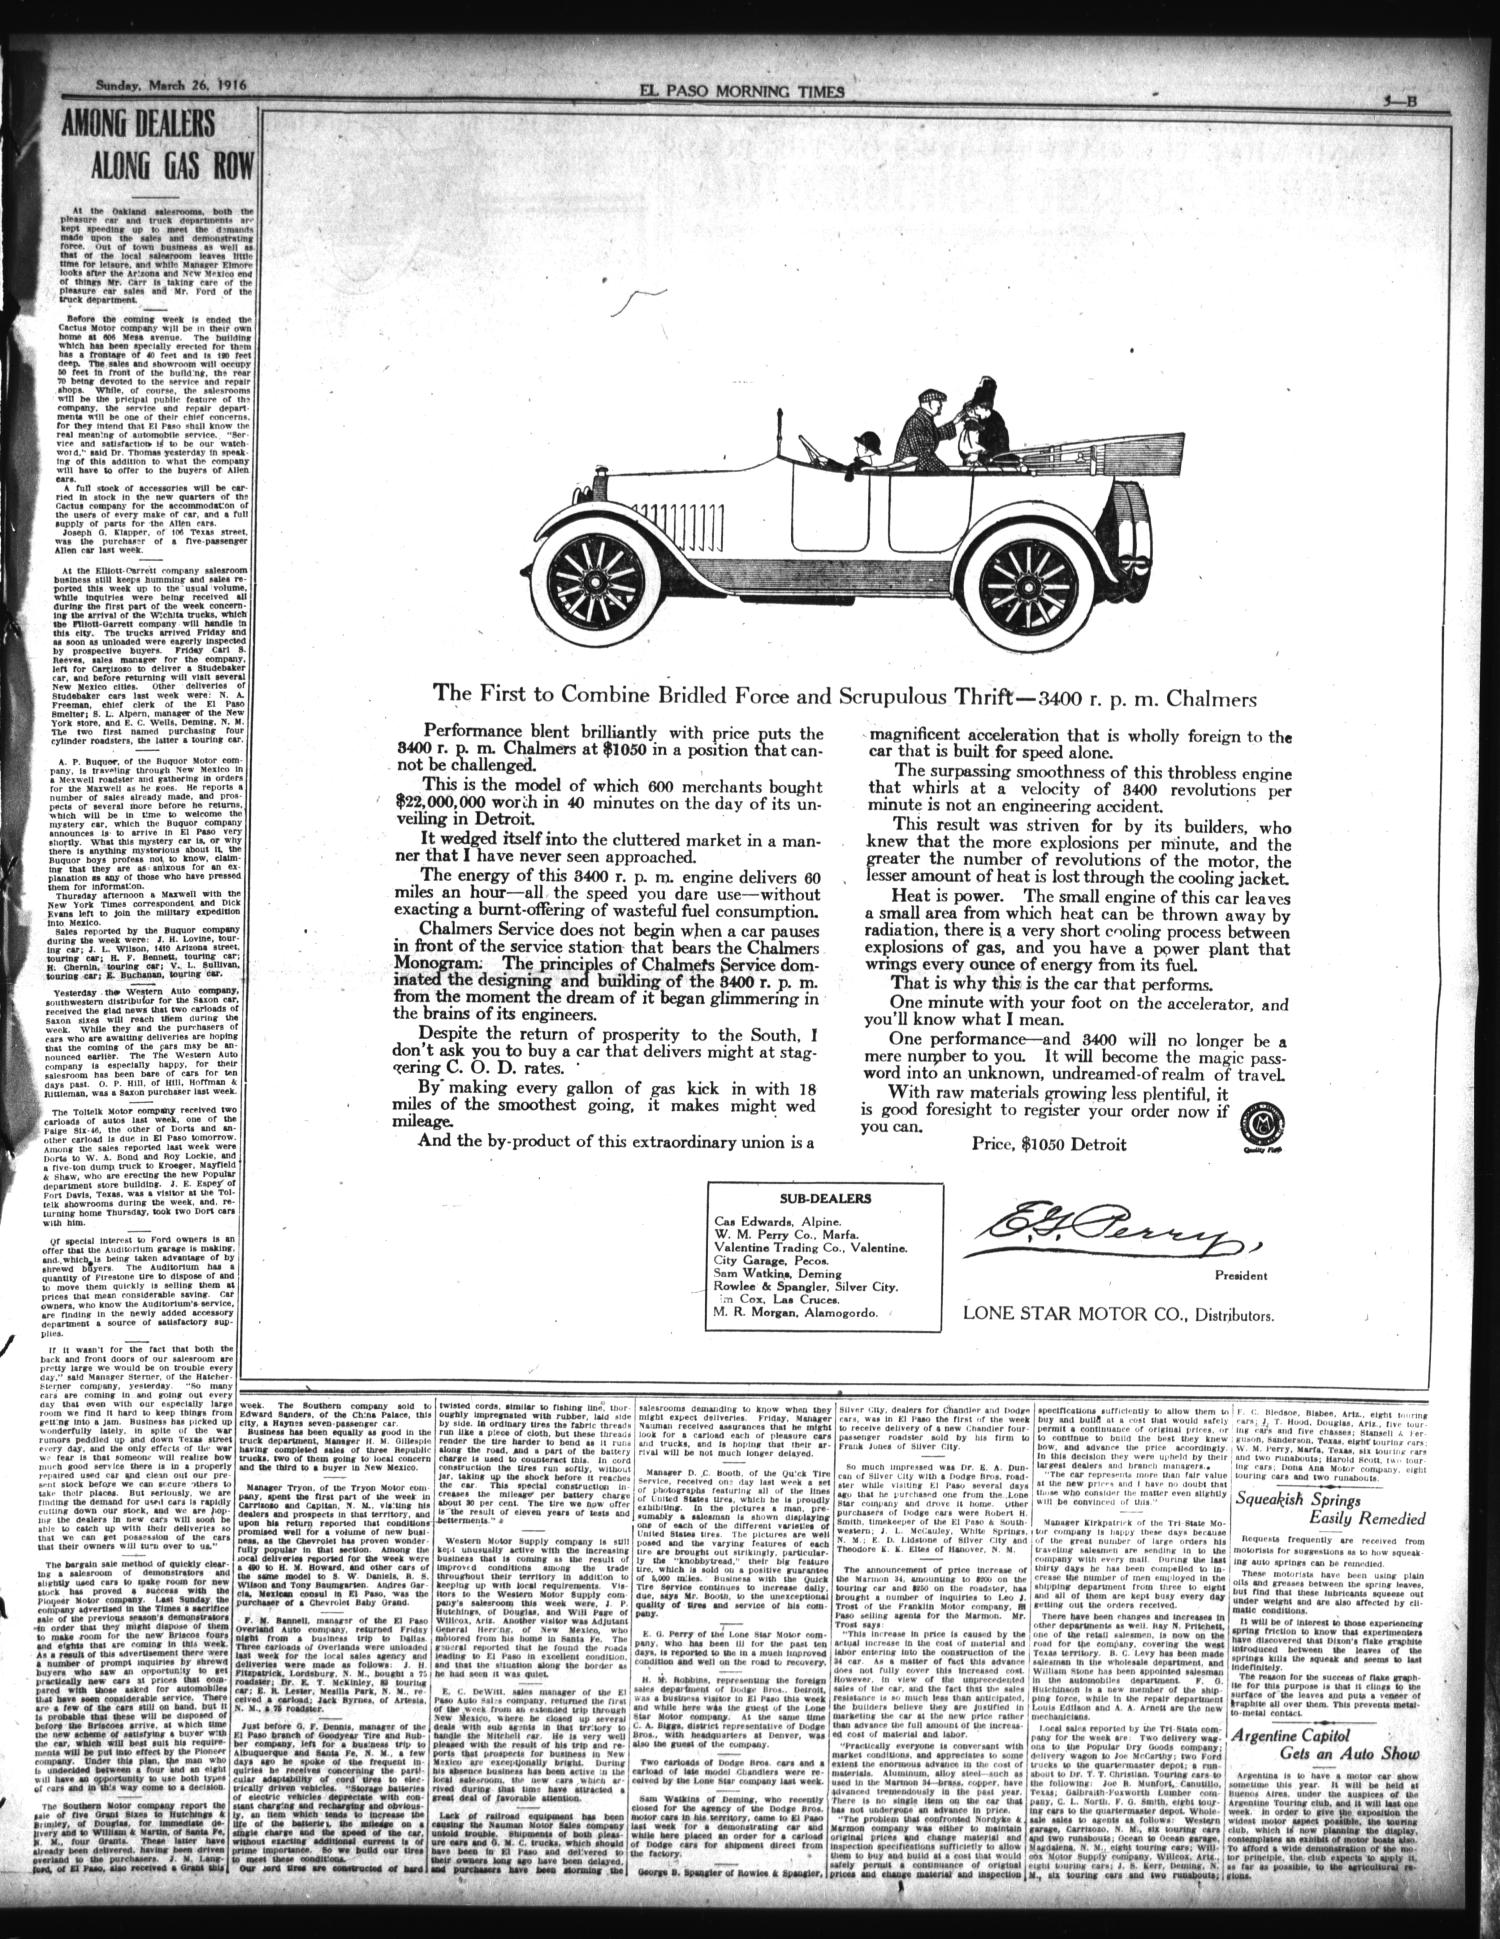 El Paso Morning Times (El Paso, Tex.), Vol. 36TH YEAR, Ed. 1, Sunday, March 26, 1916 - Page 27 of 46 - The Portal to Texas History